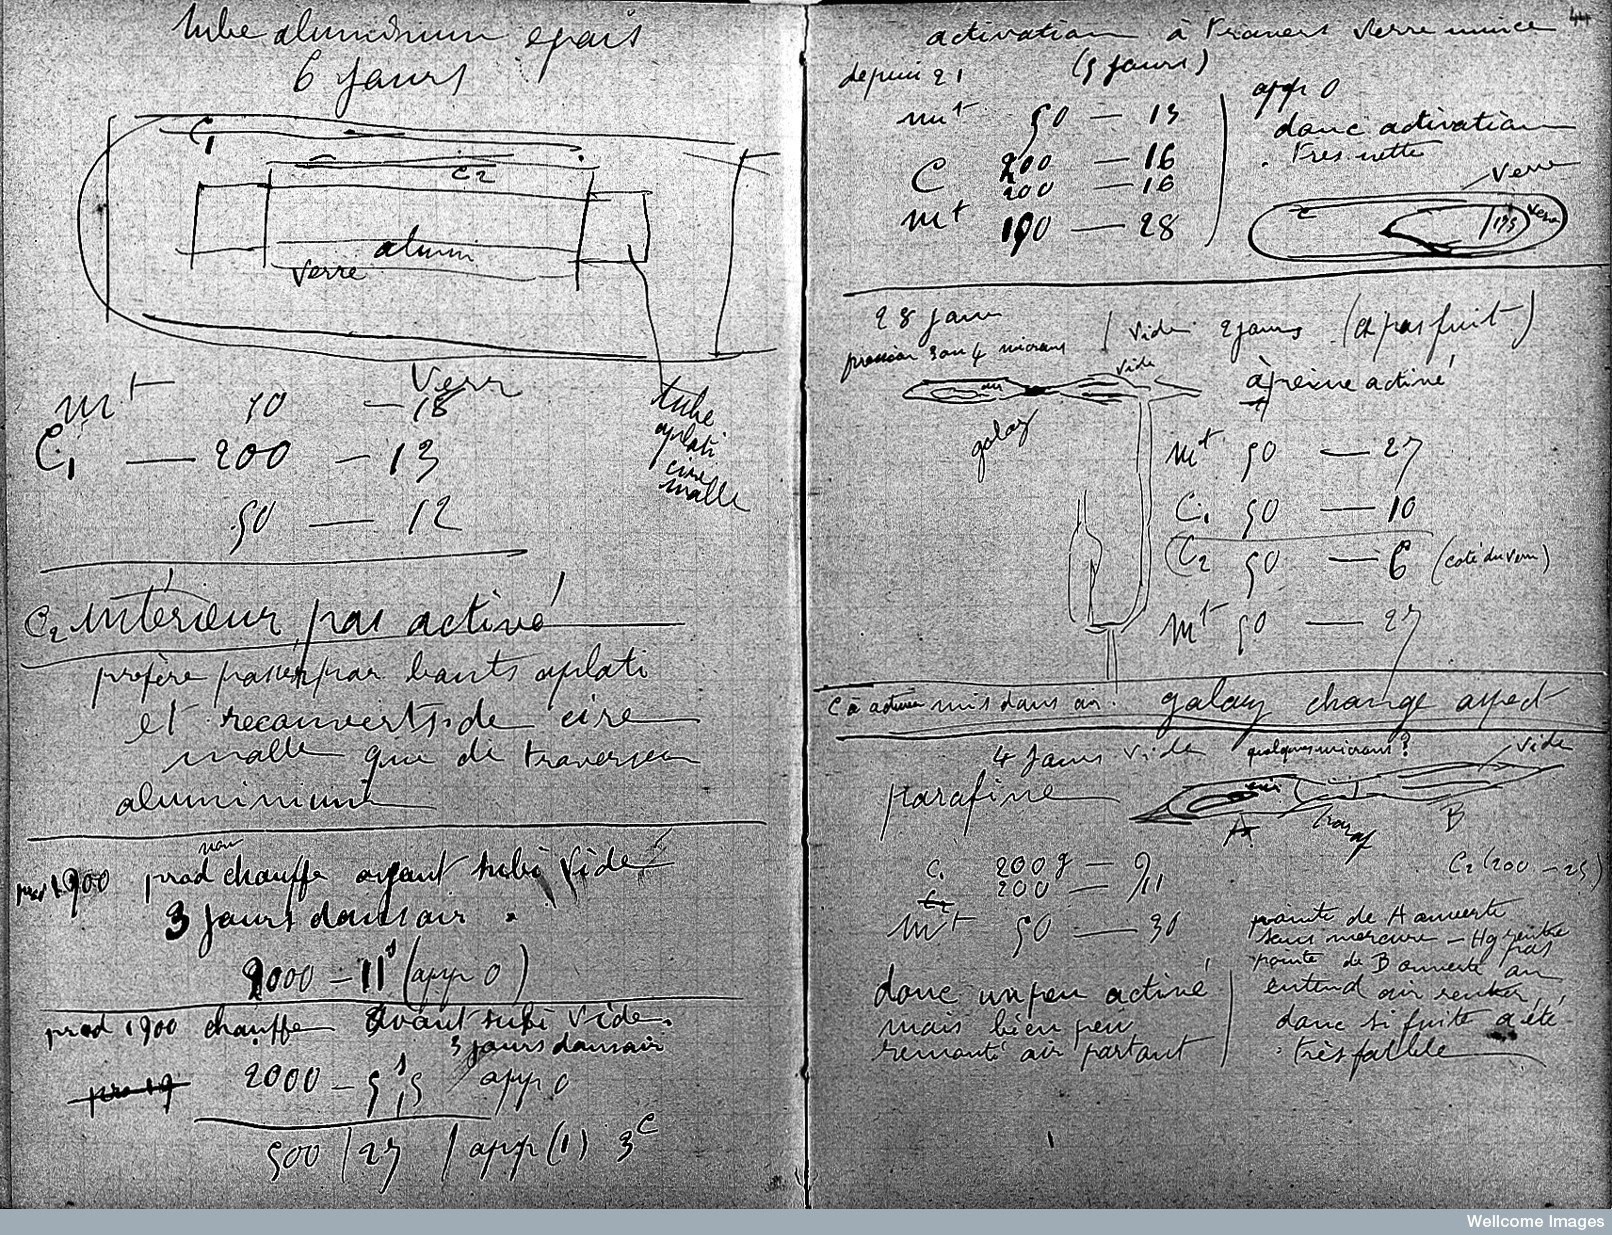 Personal belongings of Marie Curie will continue to be radioactive for another 1,500 years!